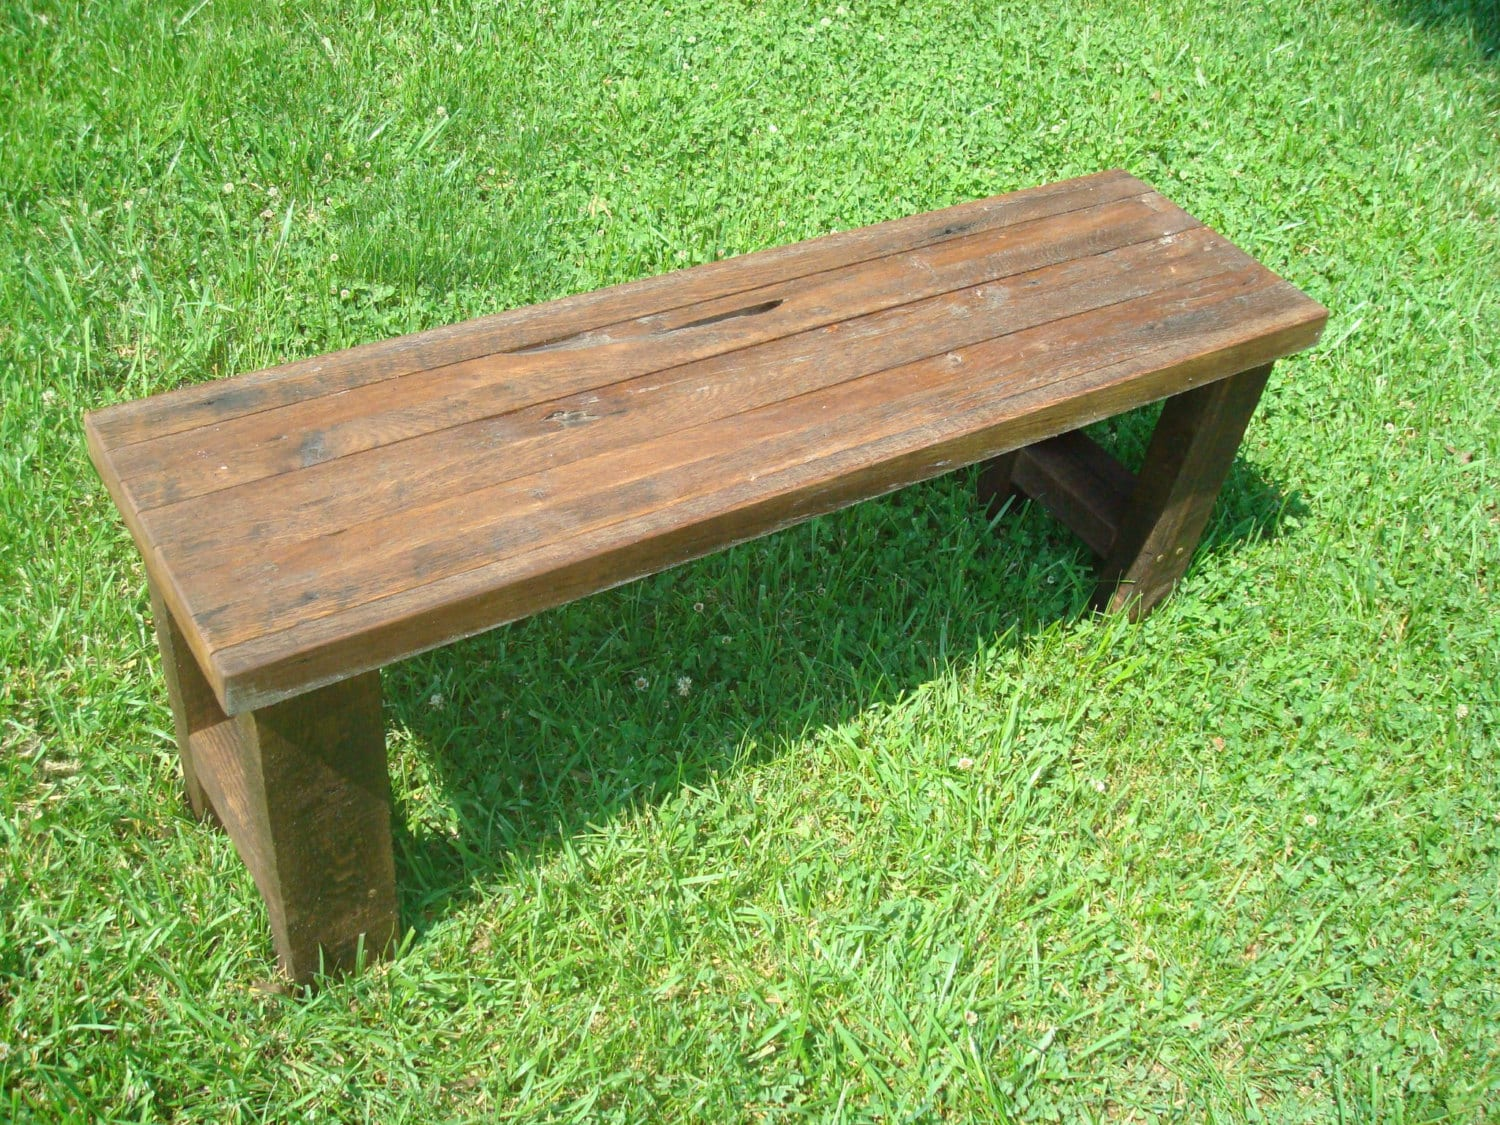 Bench Wood Bench Gnarly Bench Rustic Reclaimed Wood Bench Farmhouse Bench  Furniture Console Table Entryway Bench